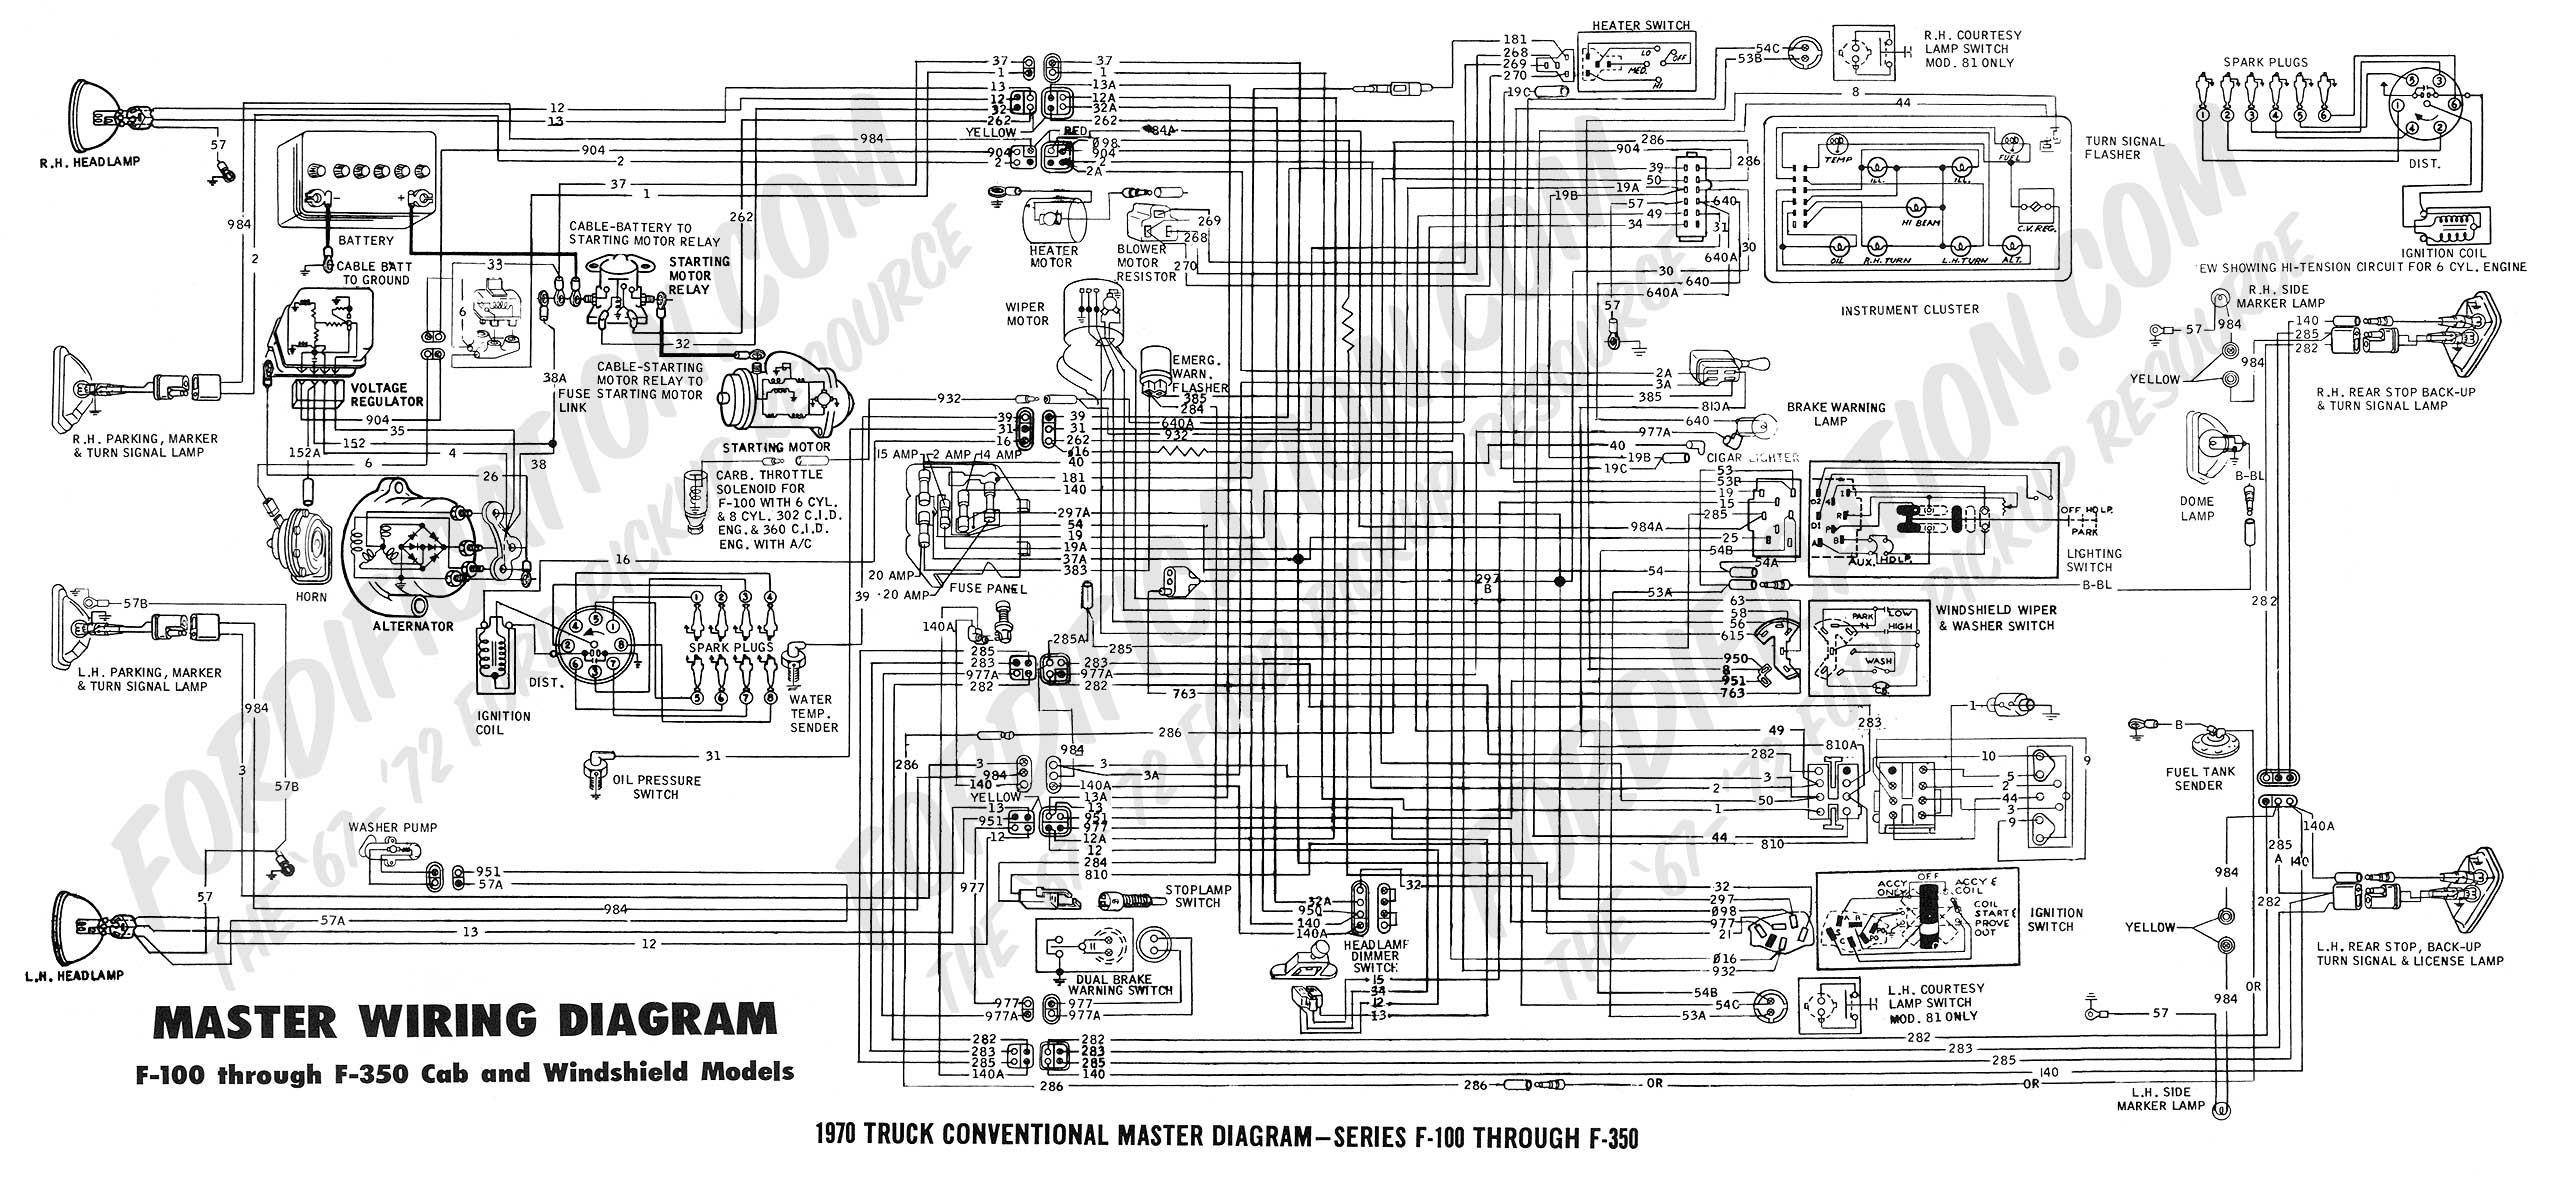 wiring diagram 70_master ford truck technical drawings and schematics section h wiring old ford wiring harness at alyssarenee.co